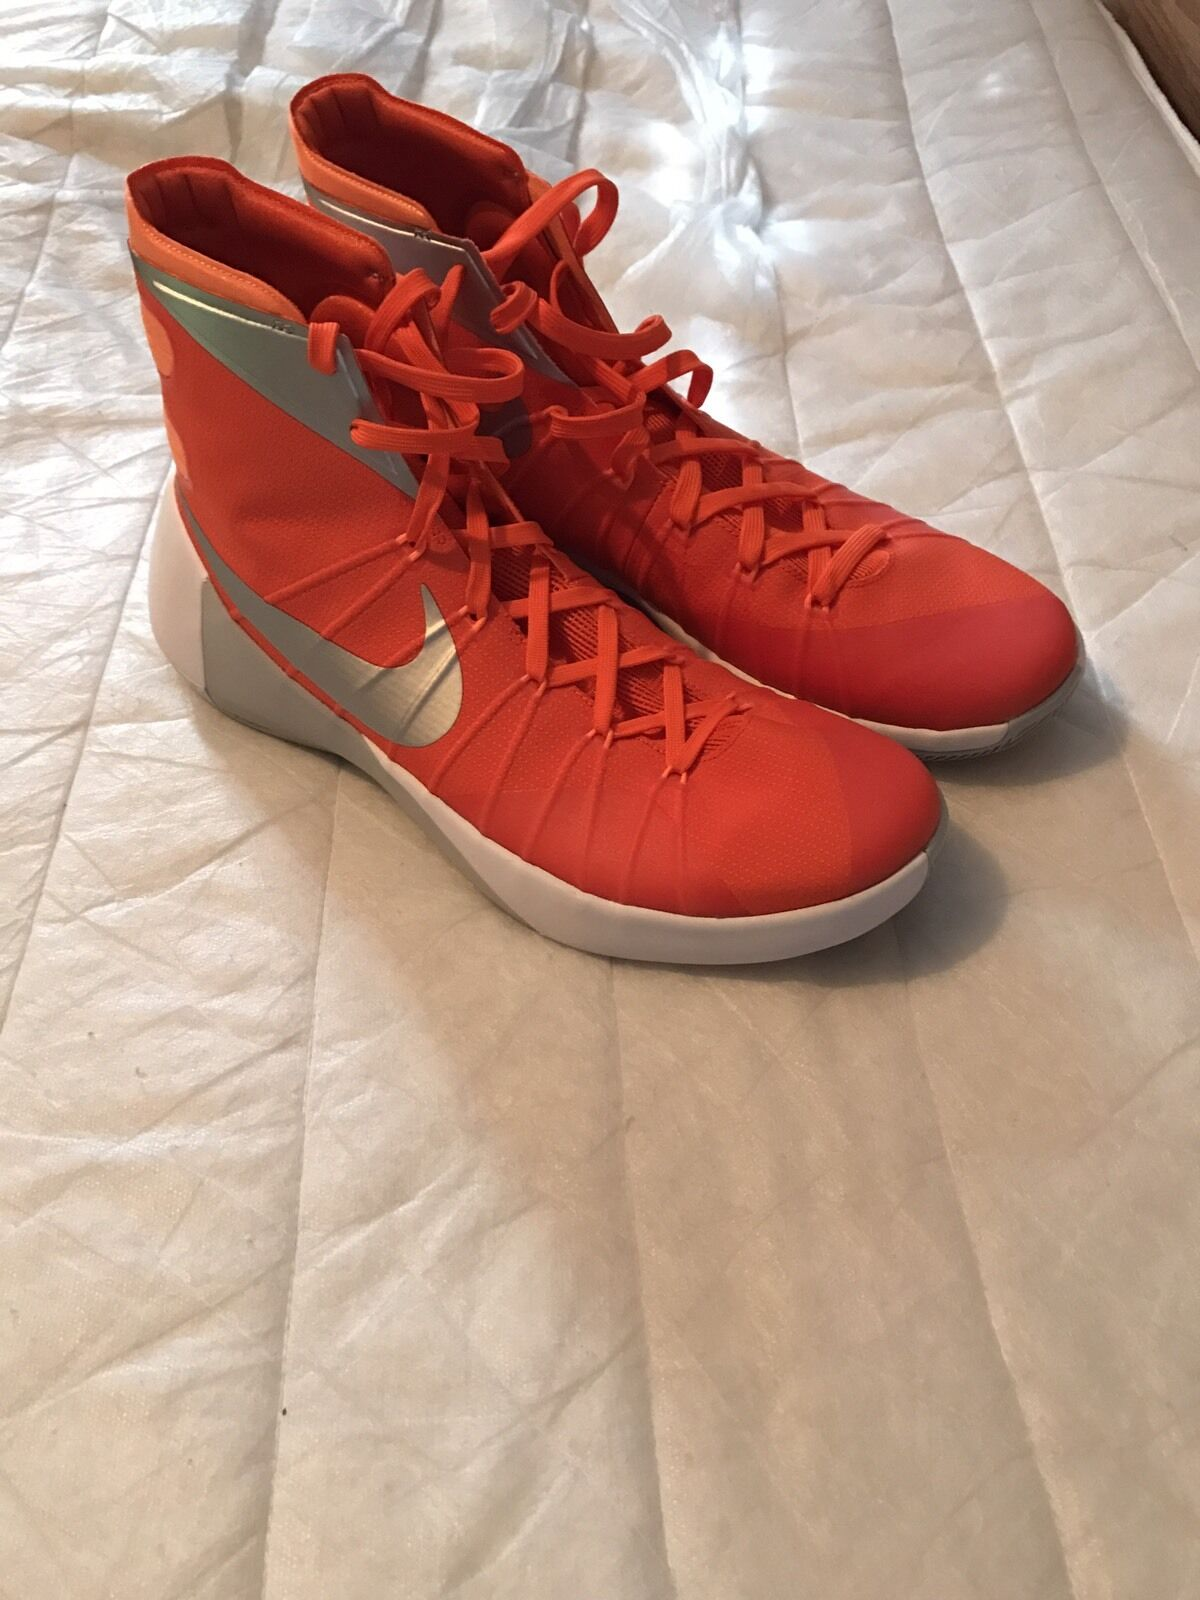 nike hyperdunk size 13  Cheap and fashionable